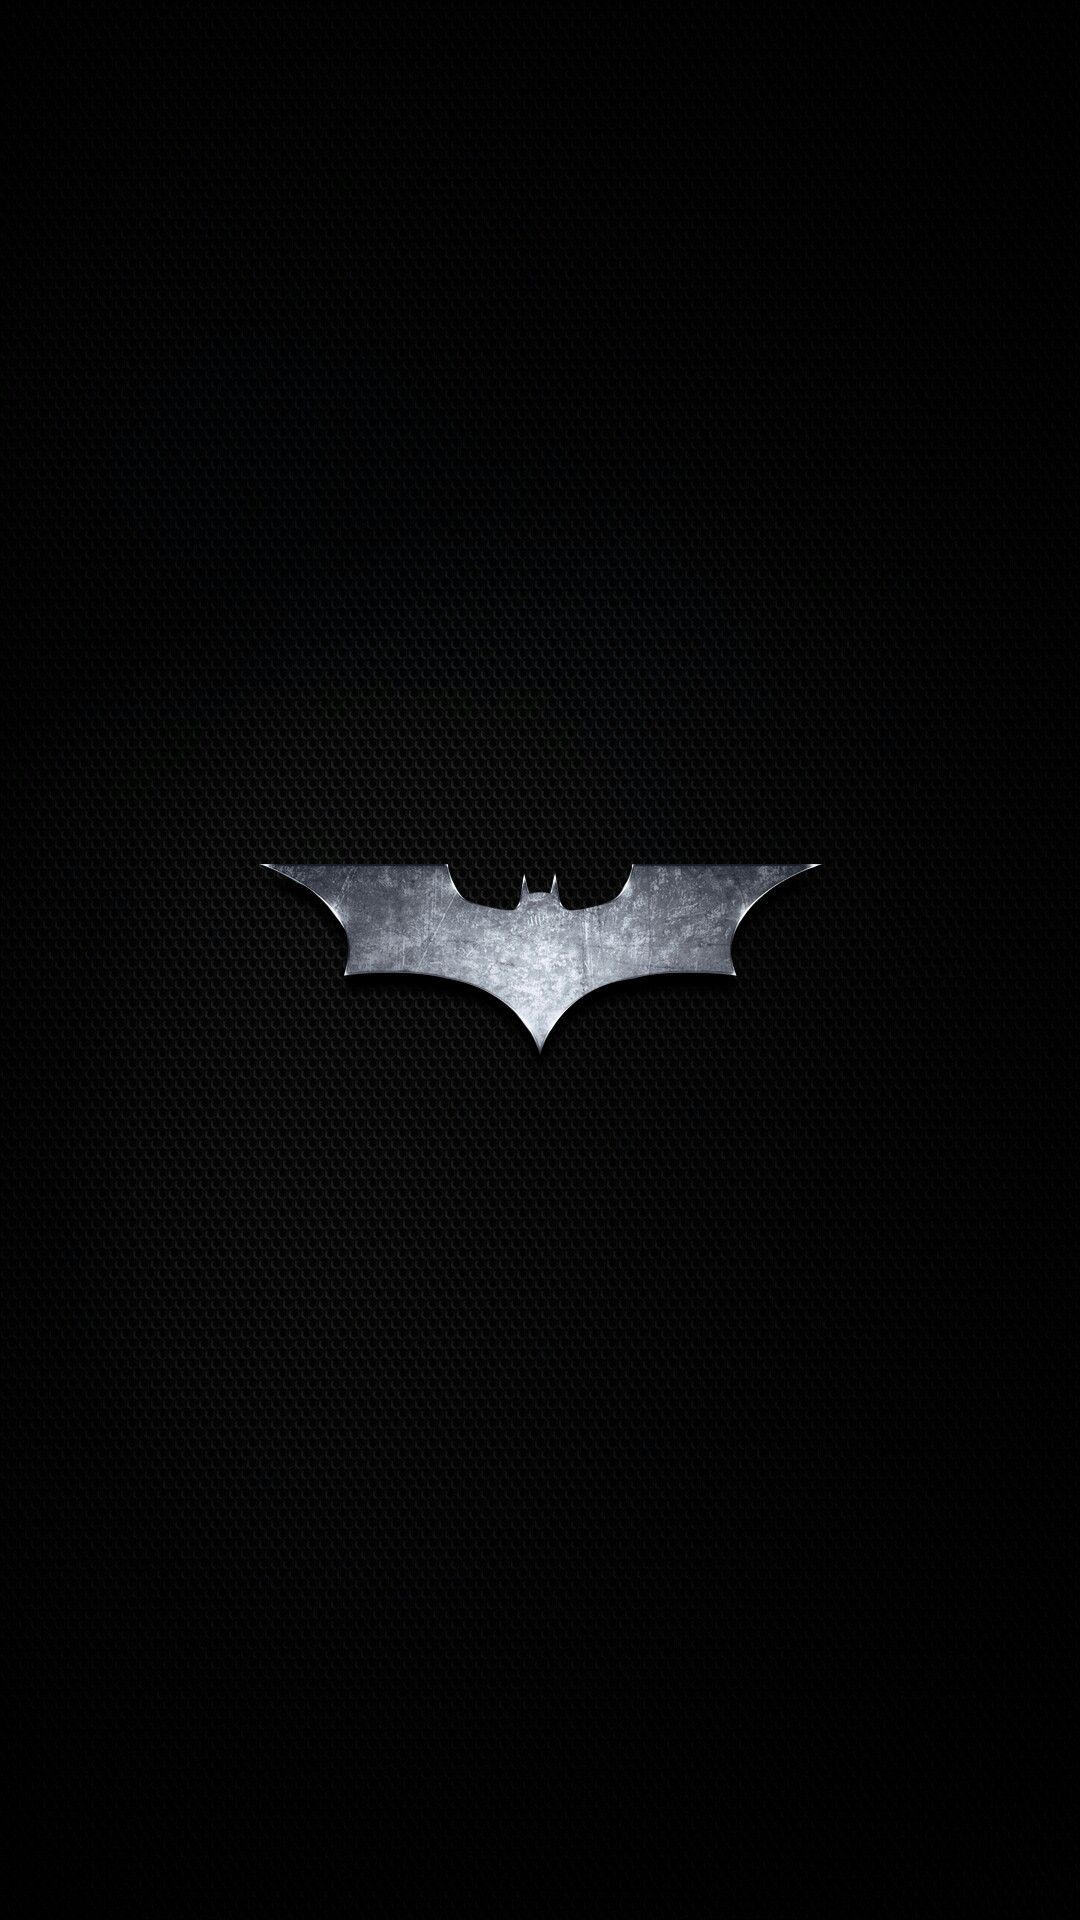 Pin By Dic Choo On Super Heroes Pictures Batman Wallpaper Batman Wallpaper Iphone Batman Poster